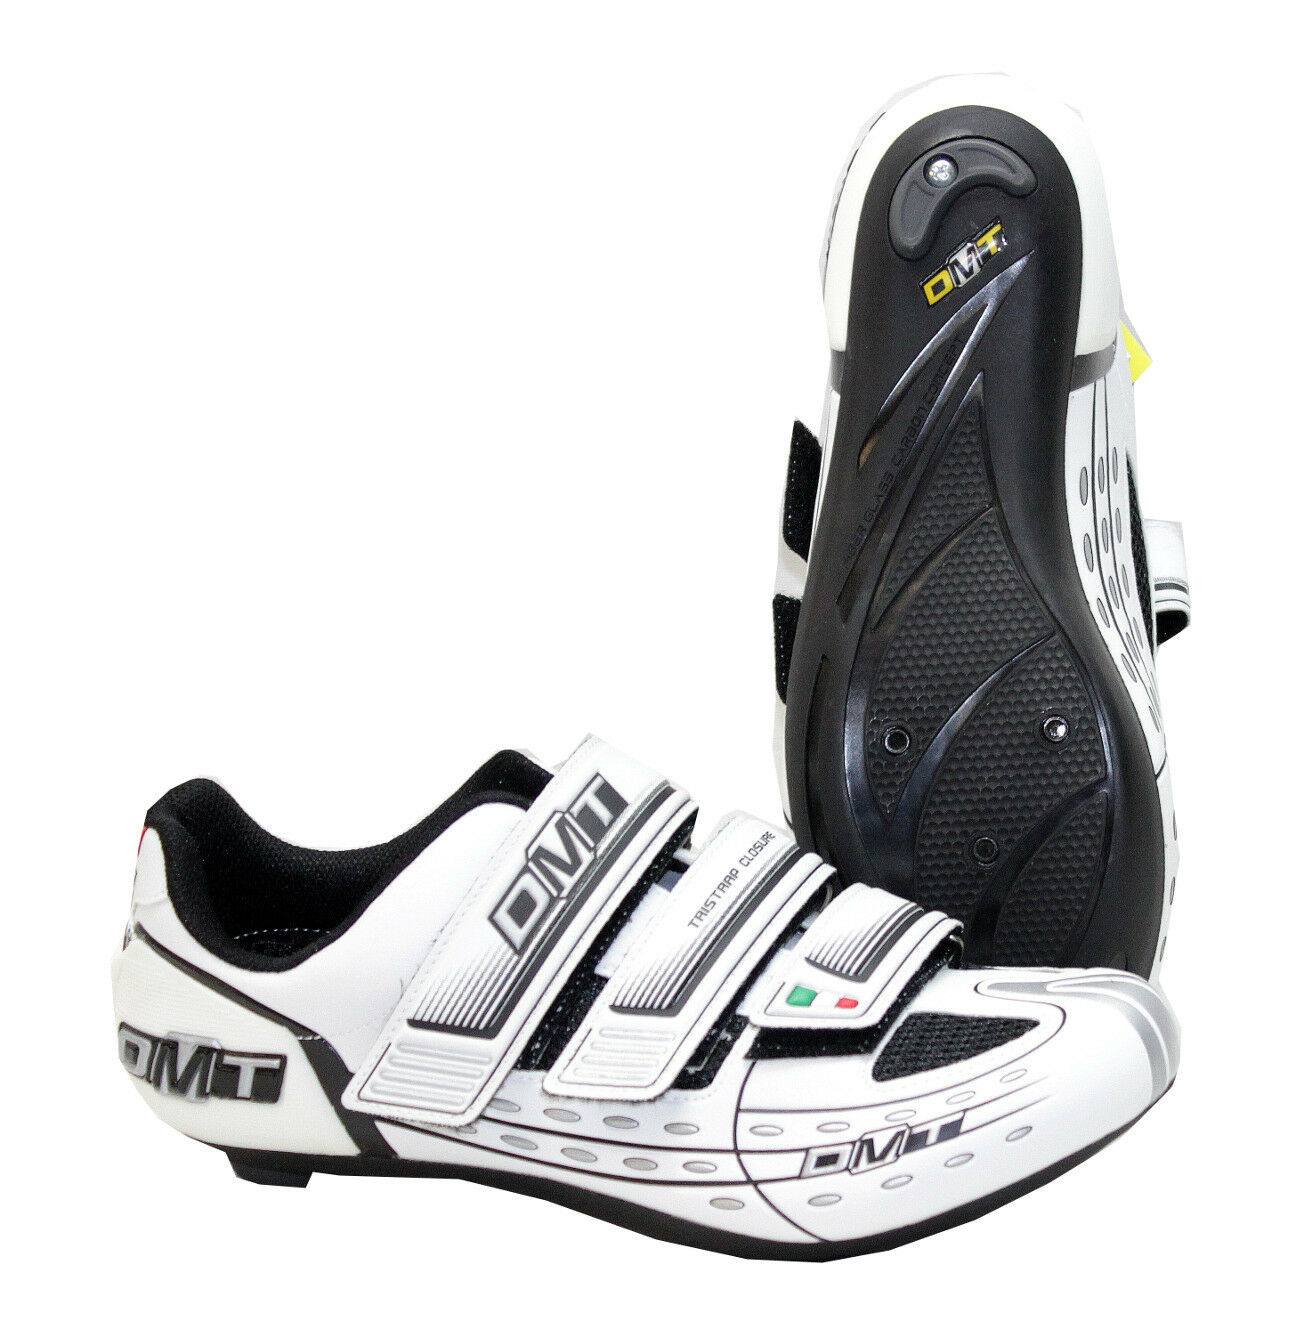 Dmt Race shoes Vision Cycling  shoes Road Bike Look Shimano Speedplay Time S-N  special offer